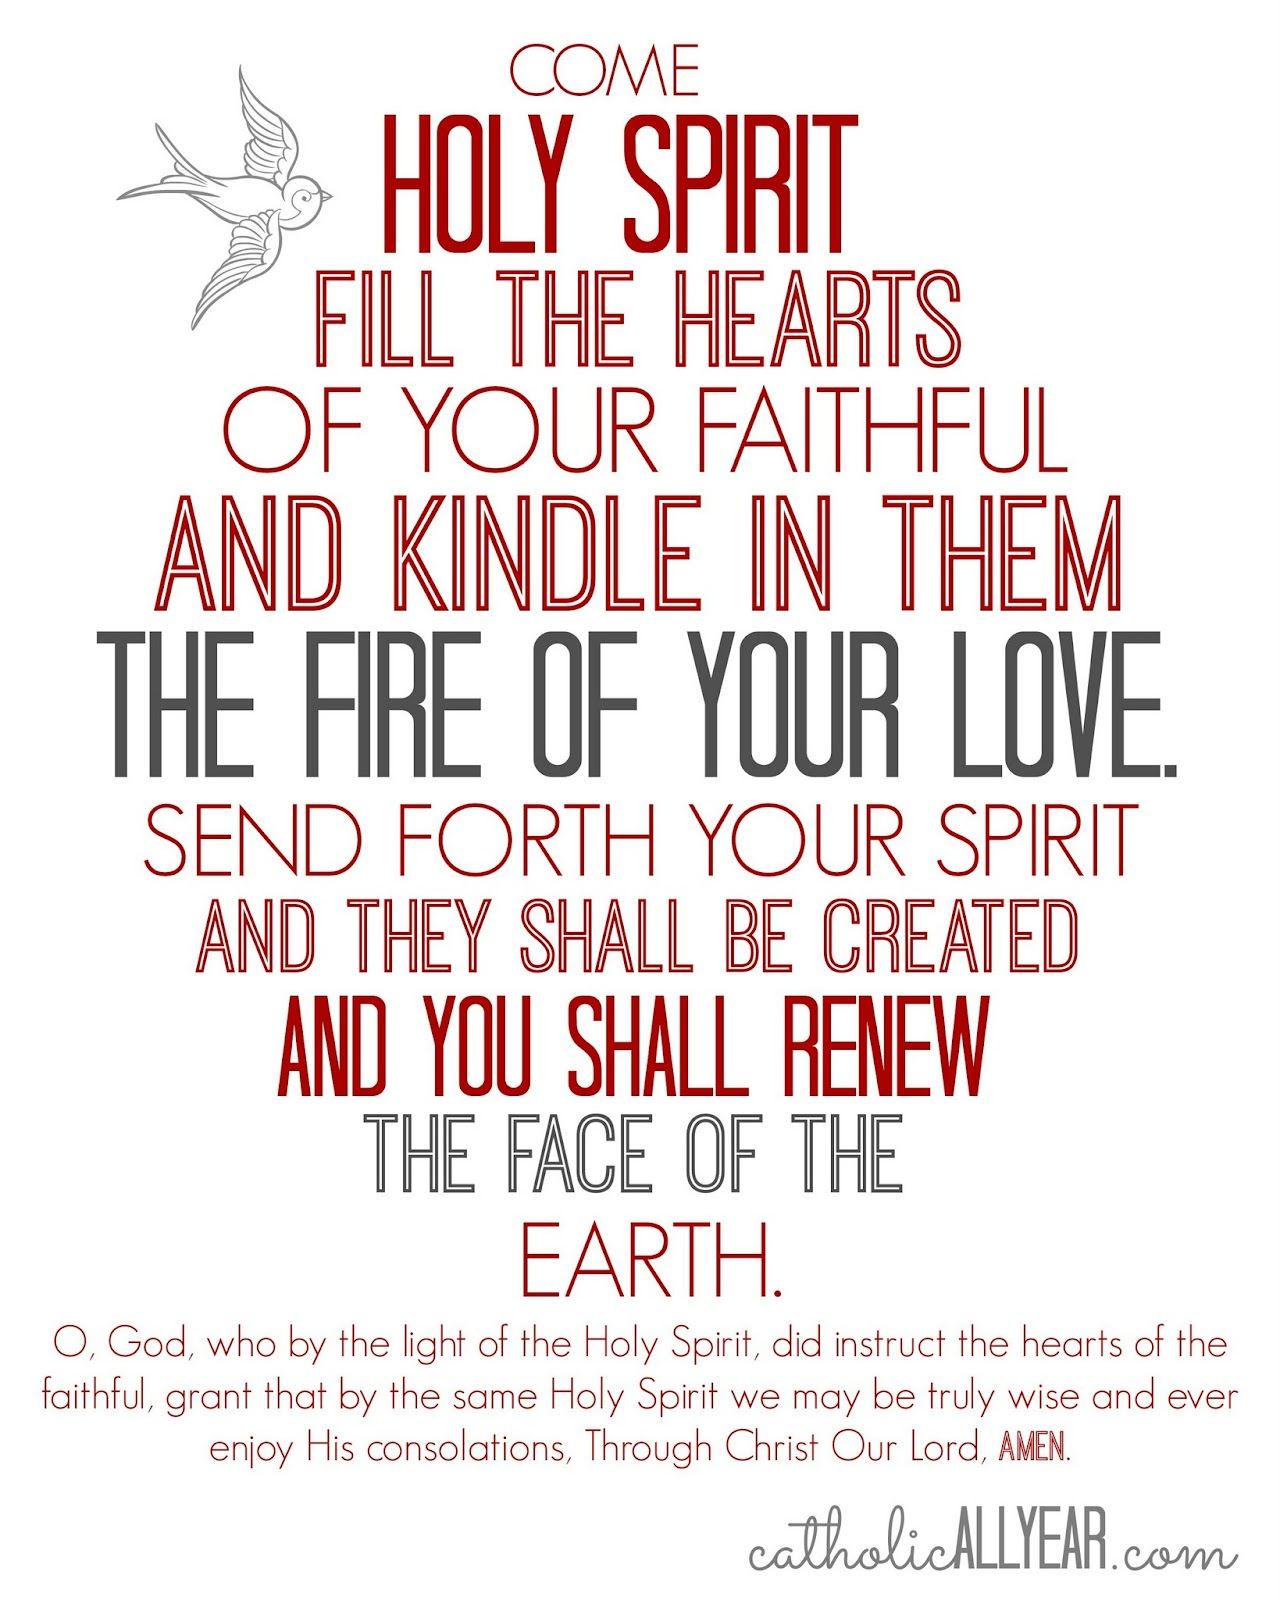 Vibrant image with regard to come holy spirit prayer printable